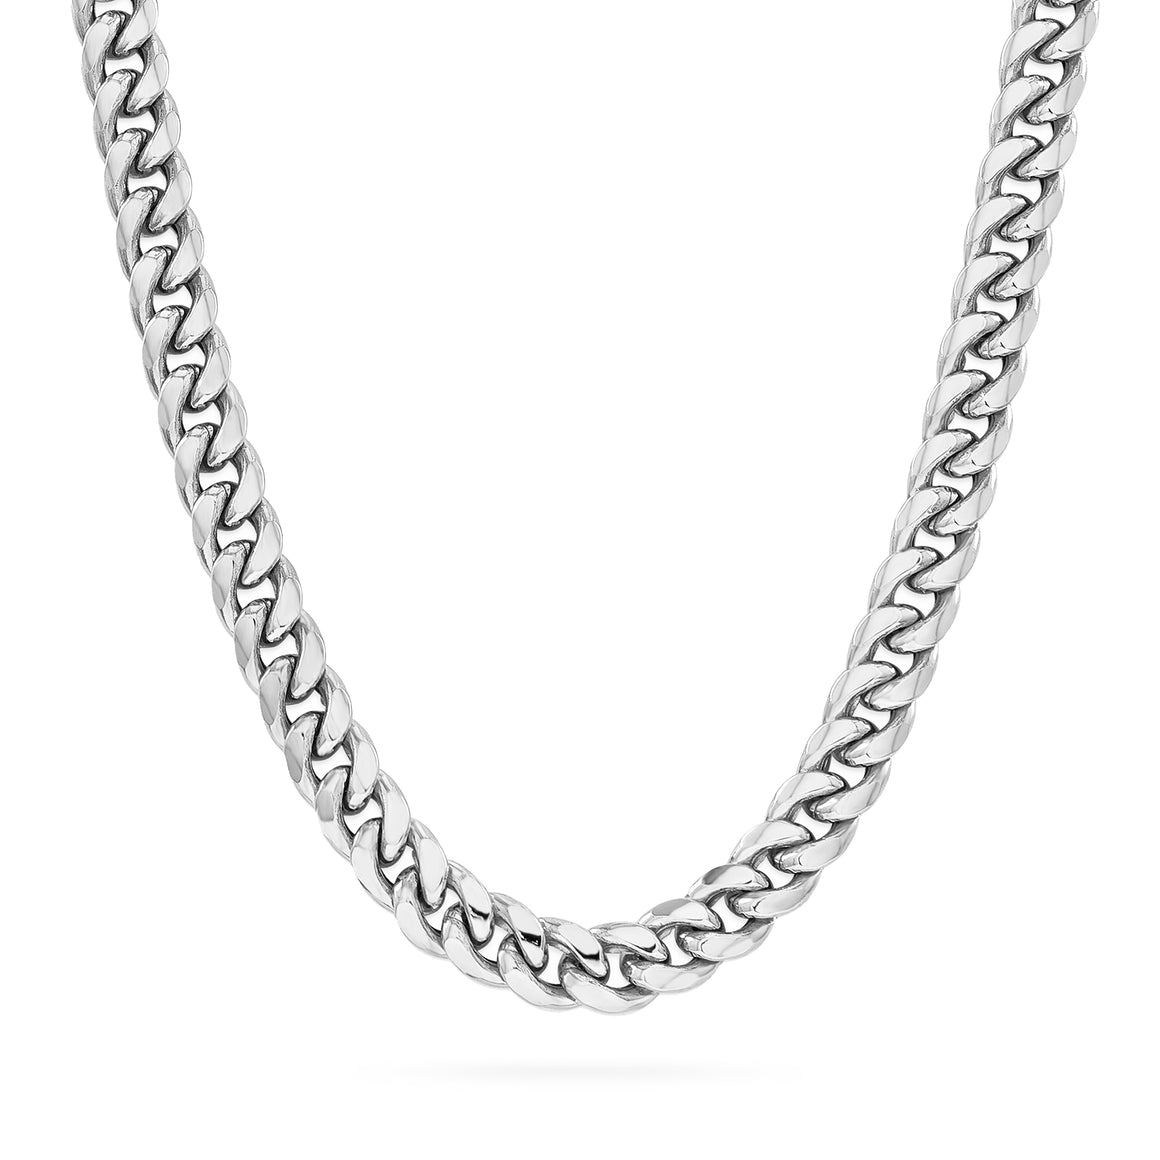 6mm Cuban Link Chain, Silver